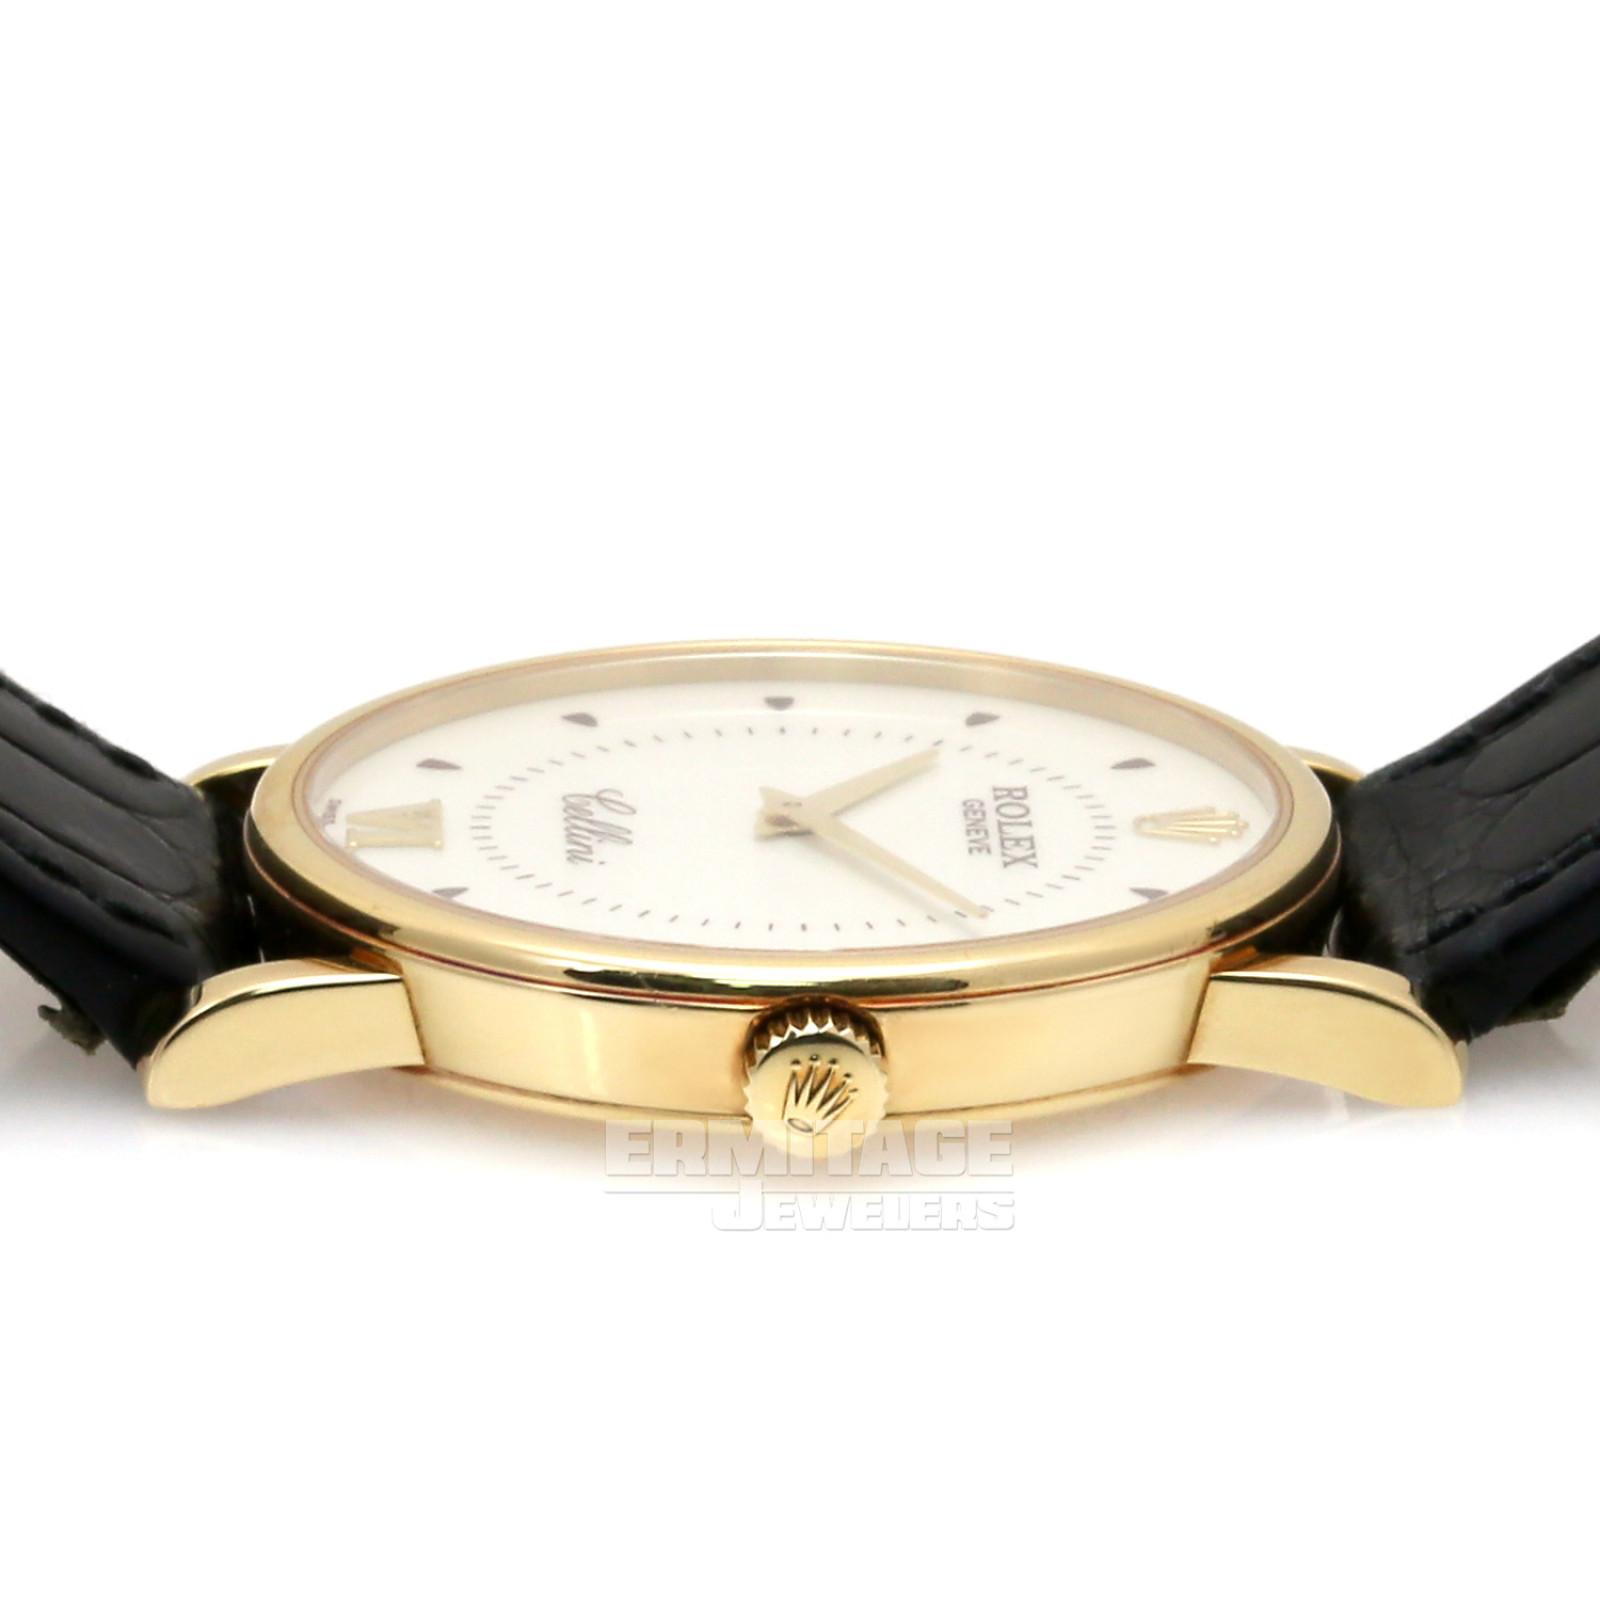 Sell Your Rolex Cellini 5115